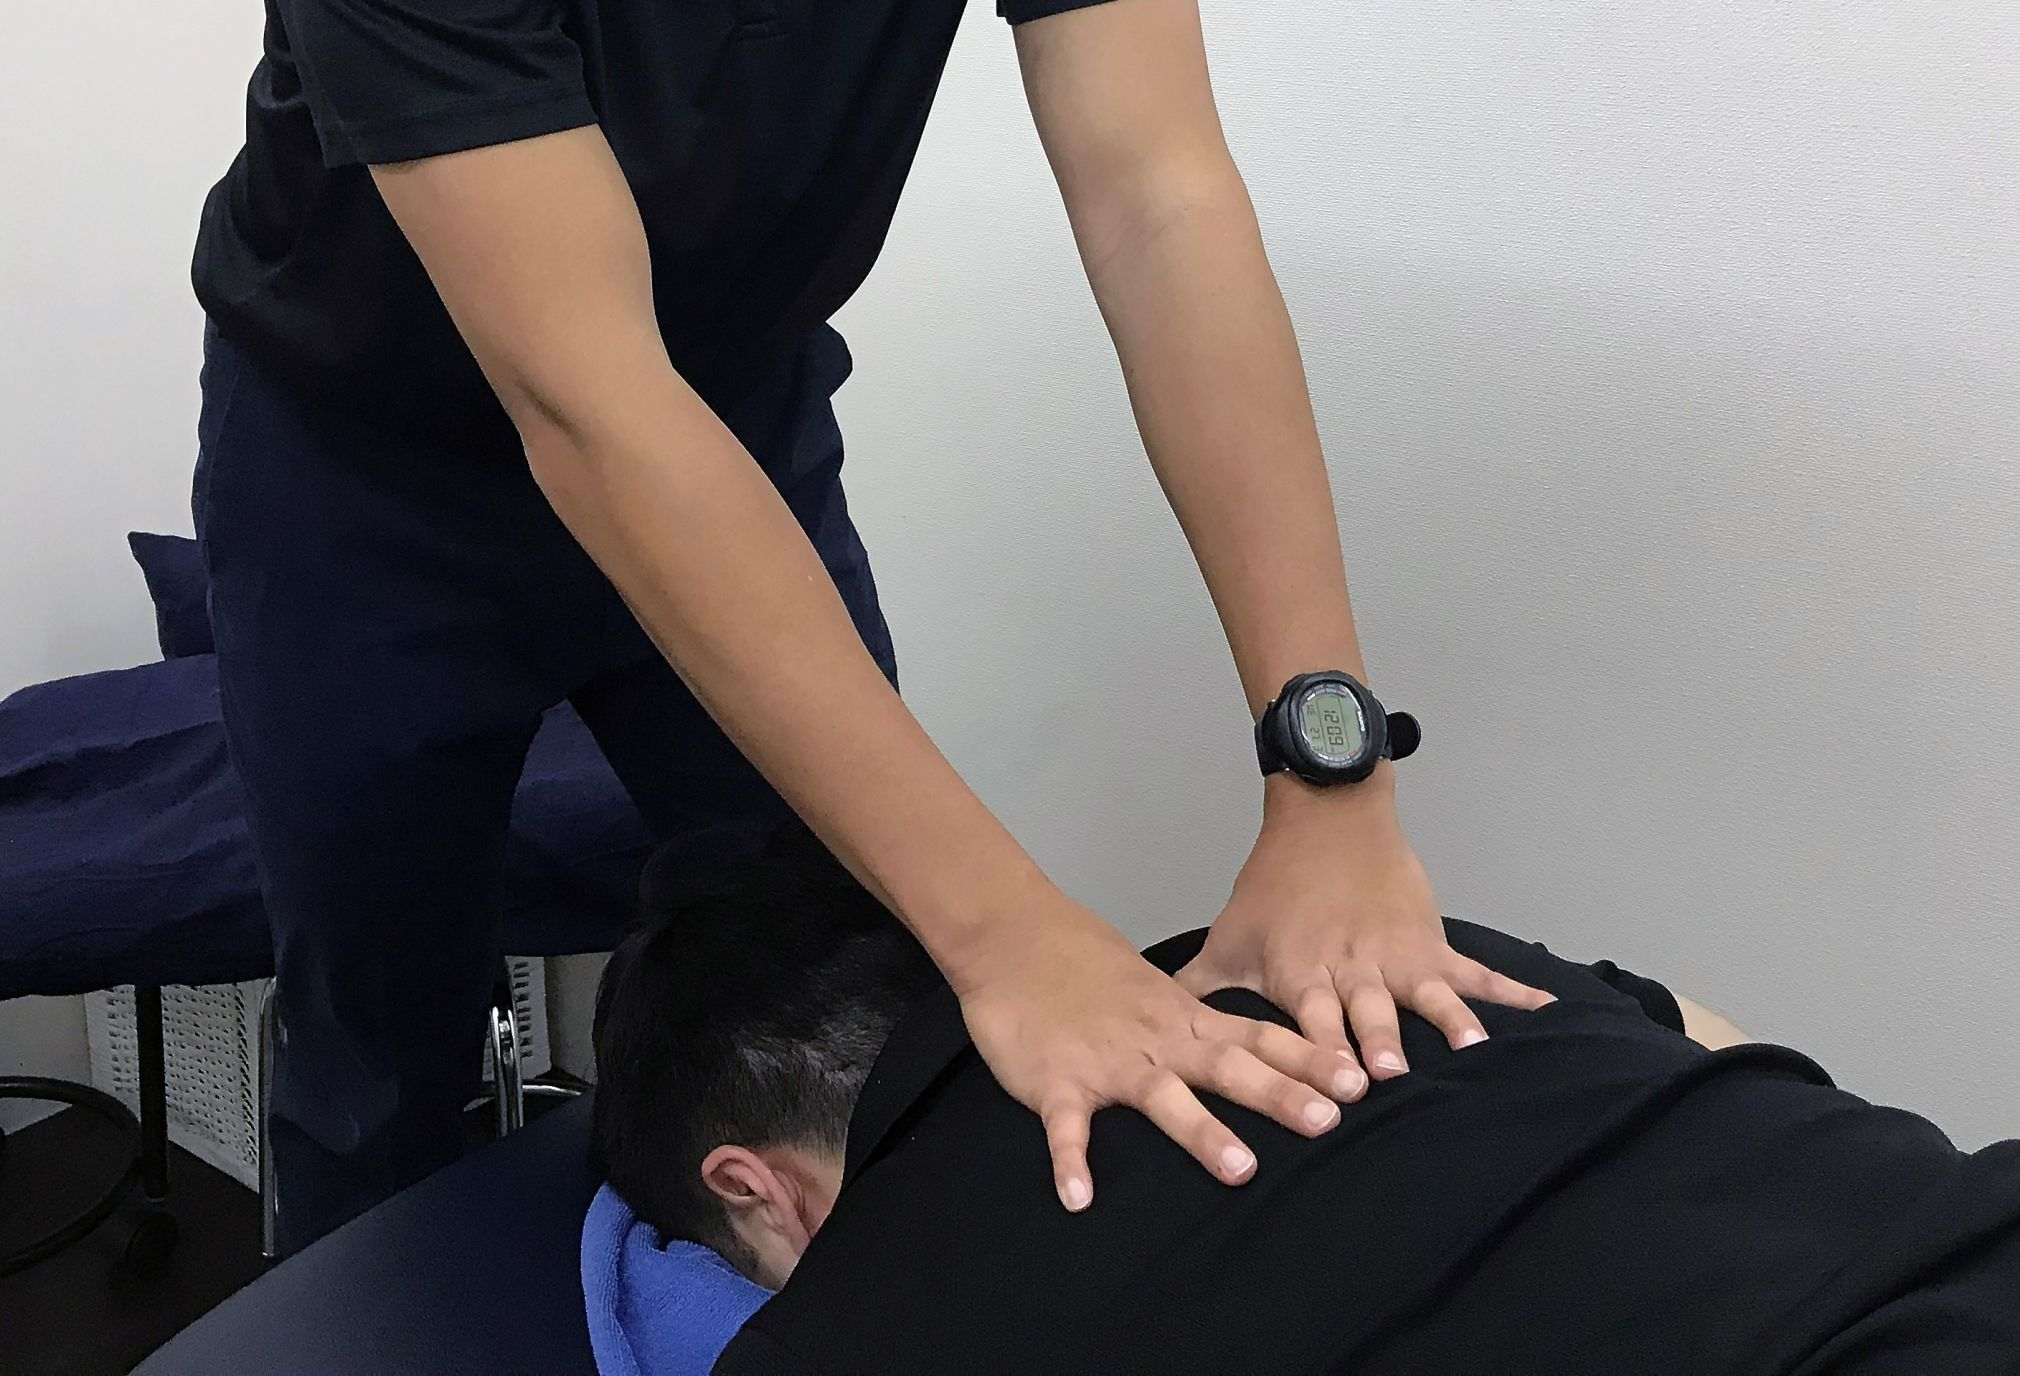 Massages may be helpful in relieving body aches and pains.